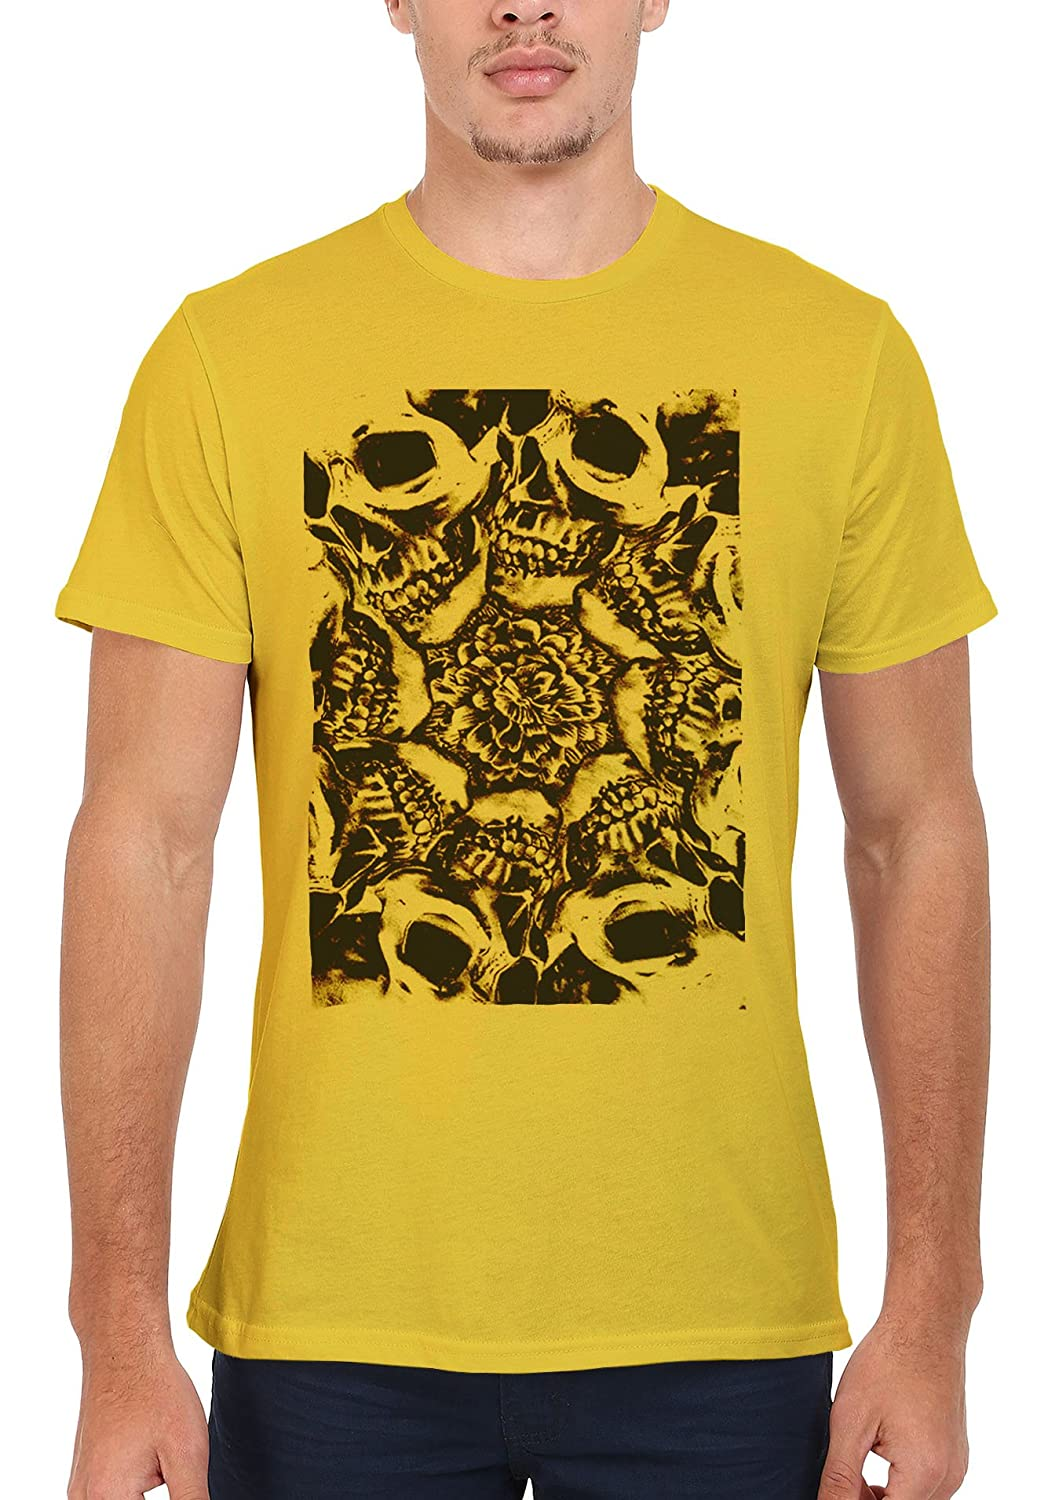 Floral Skull Horror Men Women Damen Herren Unisex Top T Shirt: Amazon.de:  Bekleidung